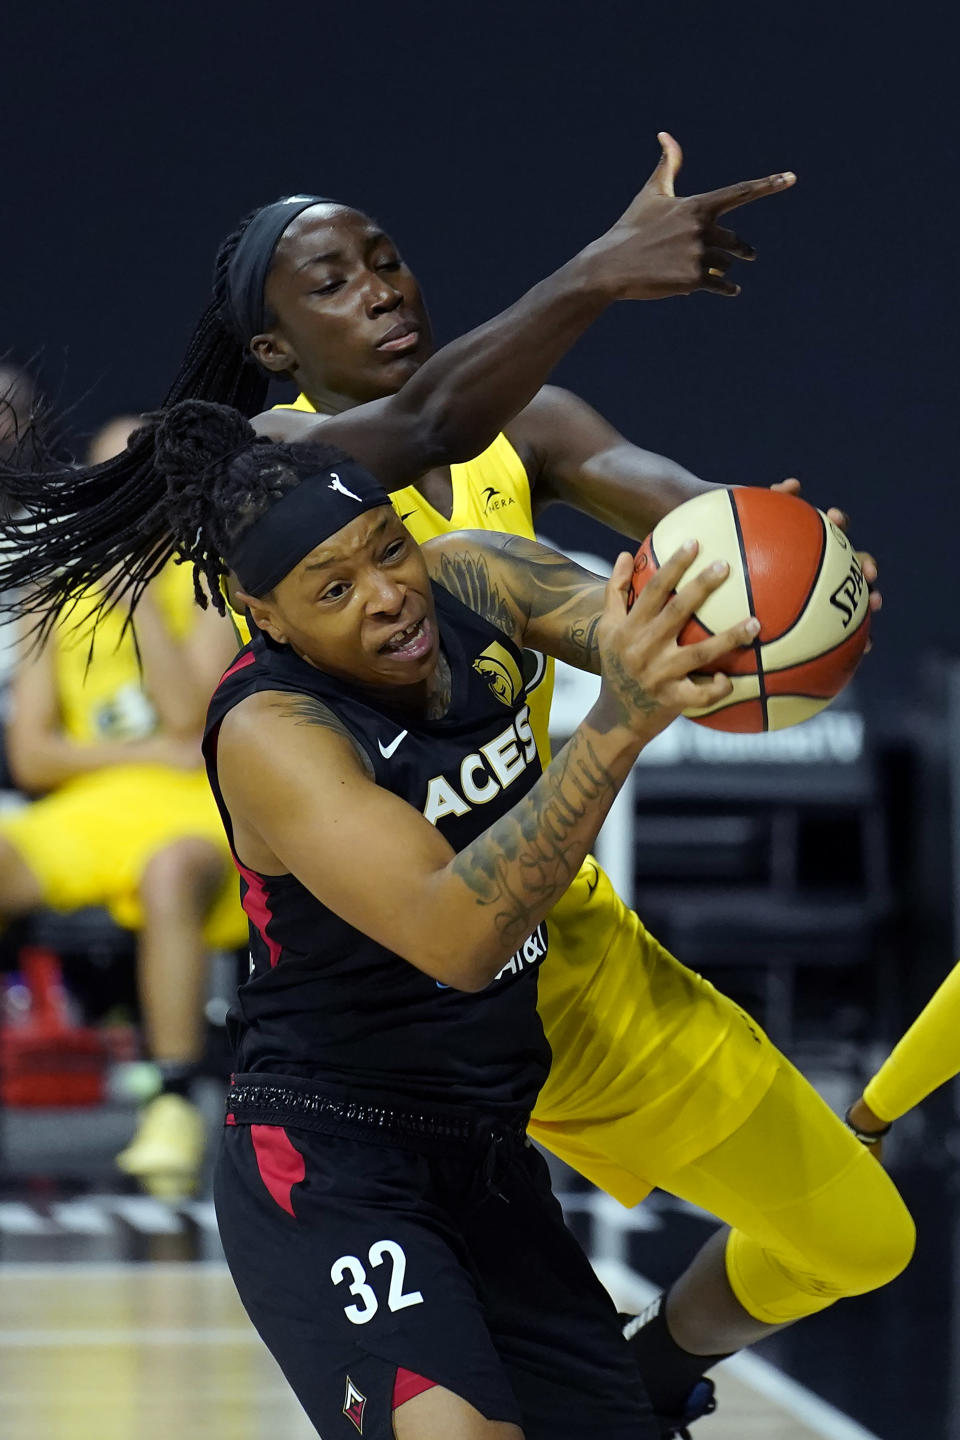 Las Vegas Aces forward Emma Cannon (32) grabs a rebound away from Seattle Storm center Ezi Magbegor (13) during the first half of Game 1 of basketball's WNBA Finals Friday, Oct. 2, 2020, in Bradenton, Fla. (AP Photo/Chris O'Meara)